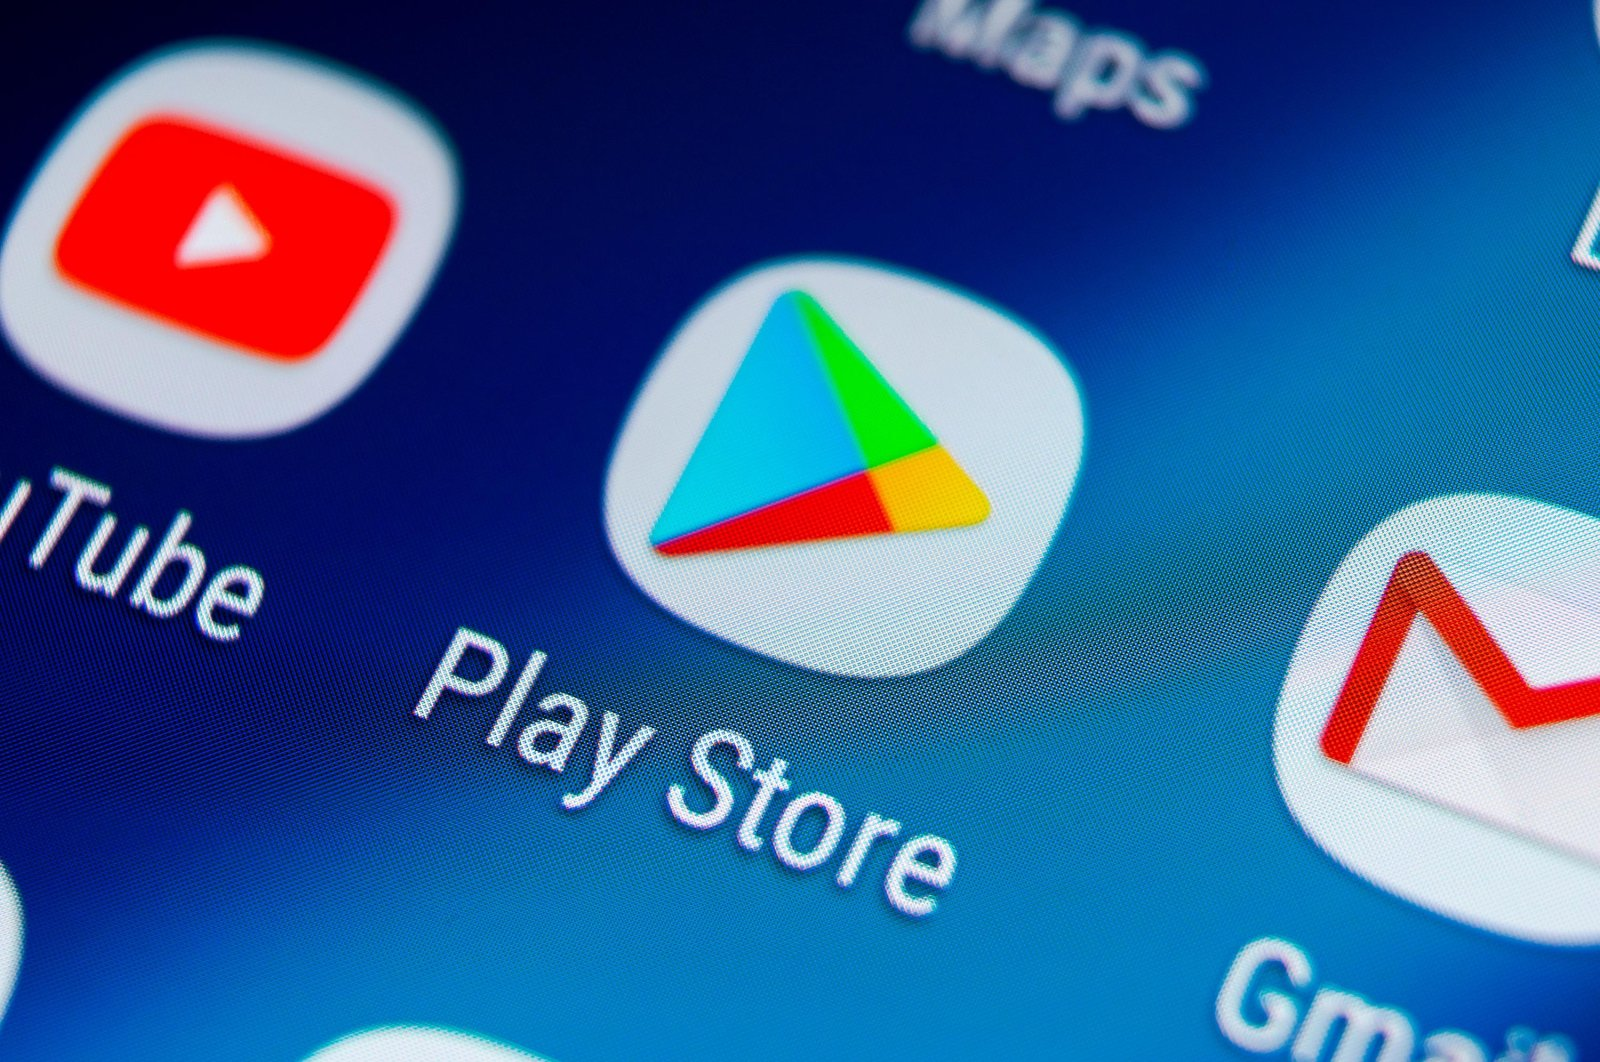 Play store application icon visible on a Samsung Galaxy S9 smartphone screen, in St. Petersburg, Russia, Aug. 19, 2018. (ShutterStock)